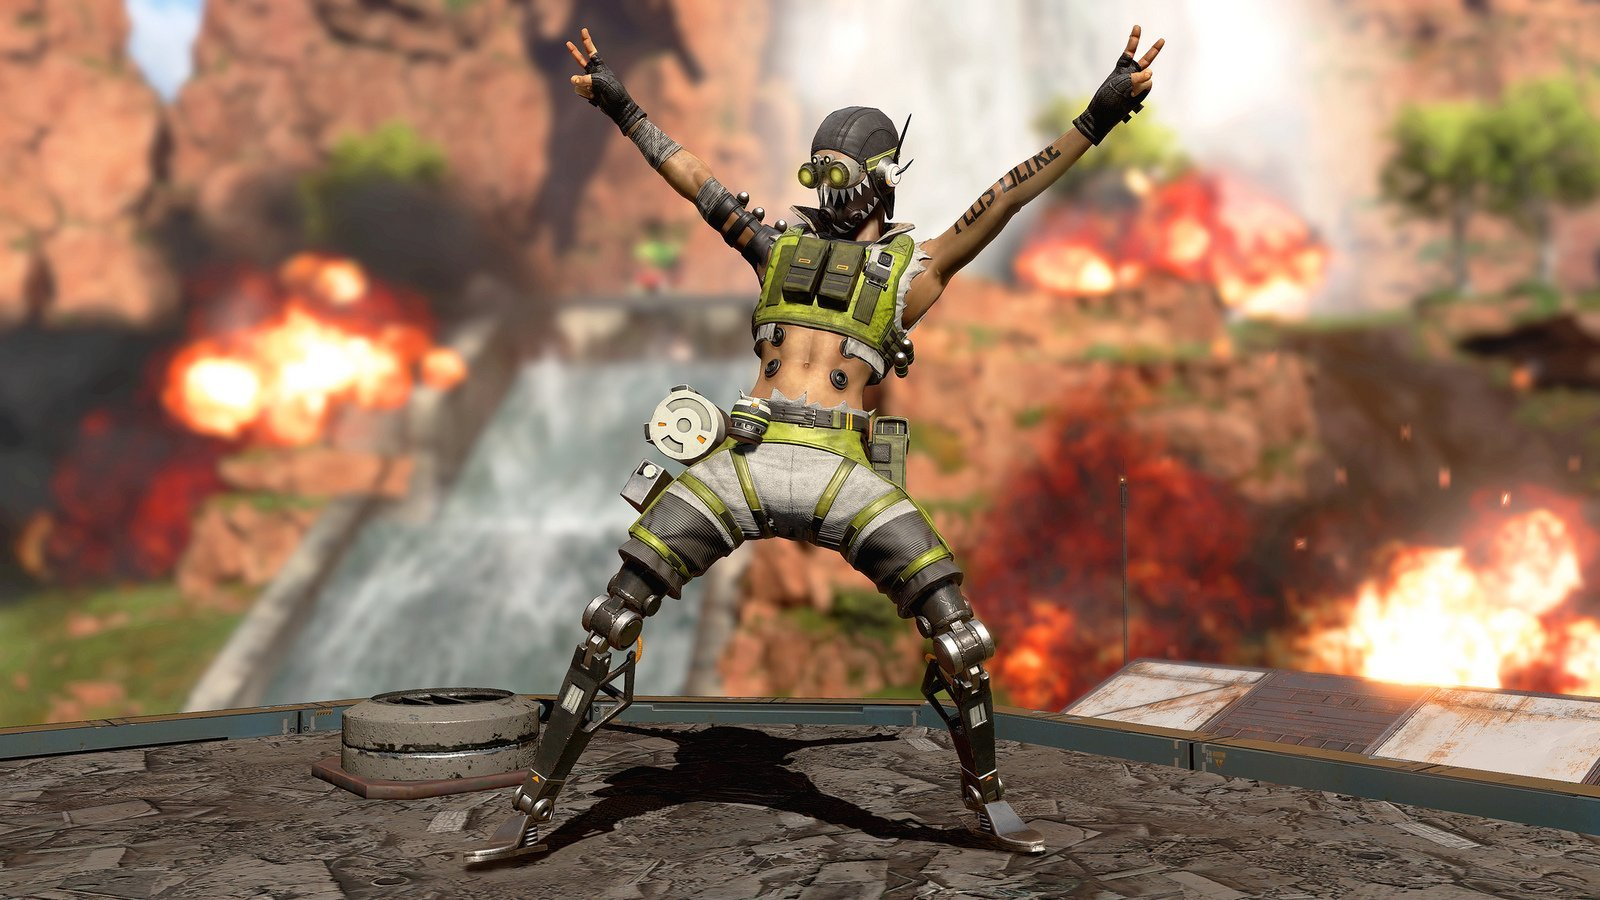 Octane character guide for Apex Legends